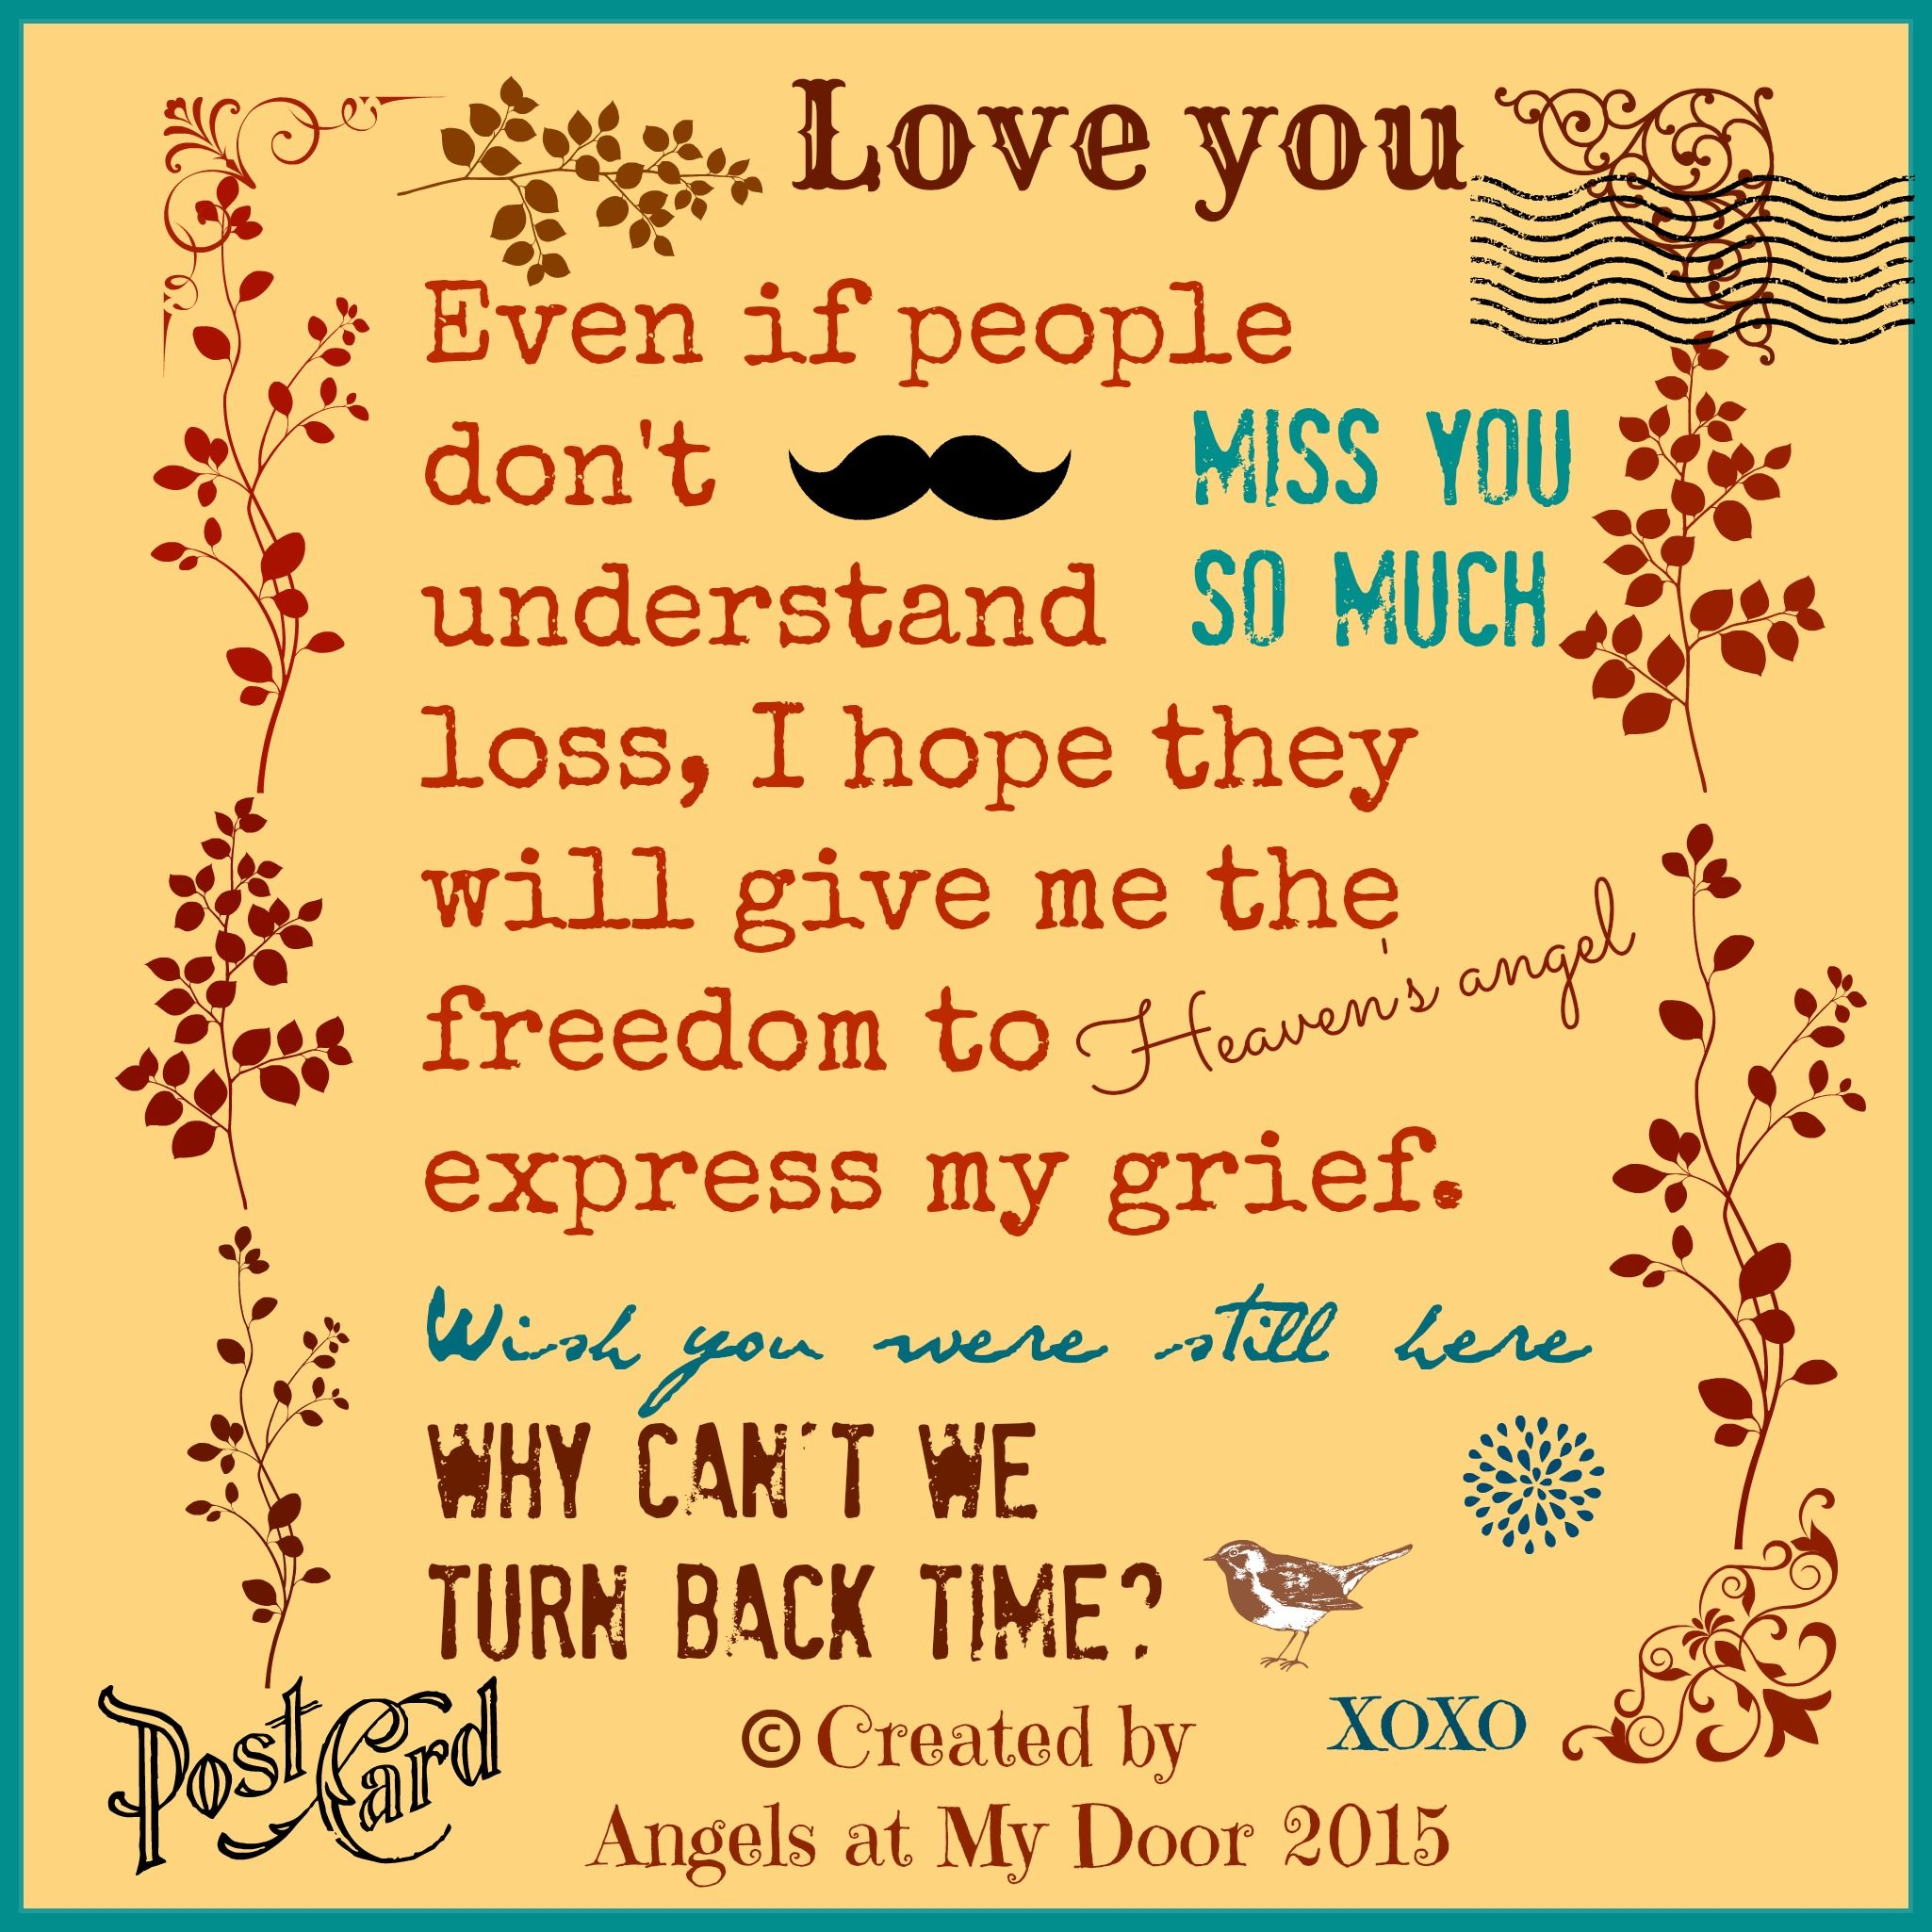 Love You~Created by Angels at My Door on Facebook